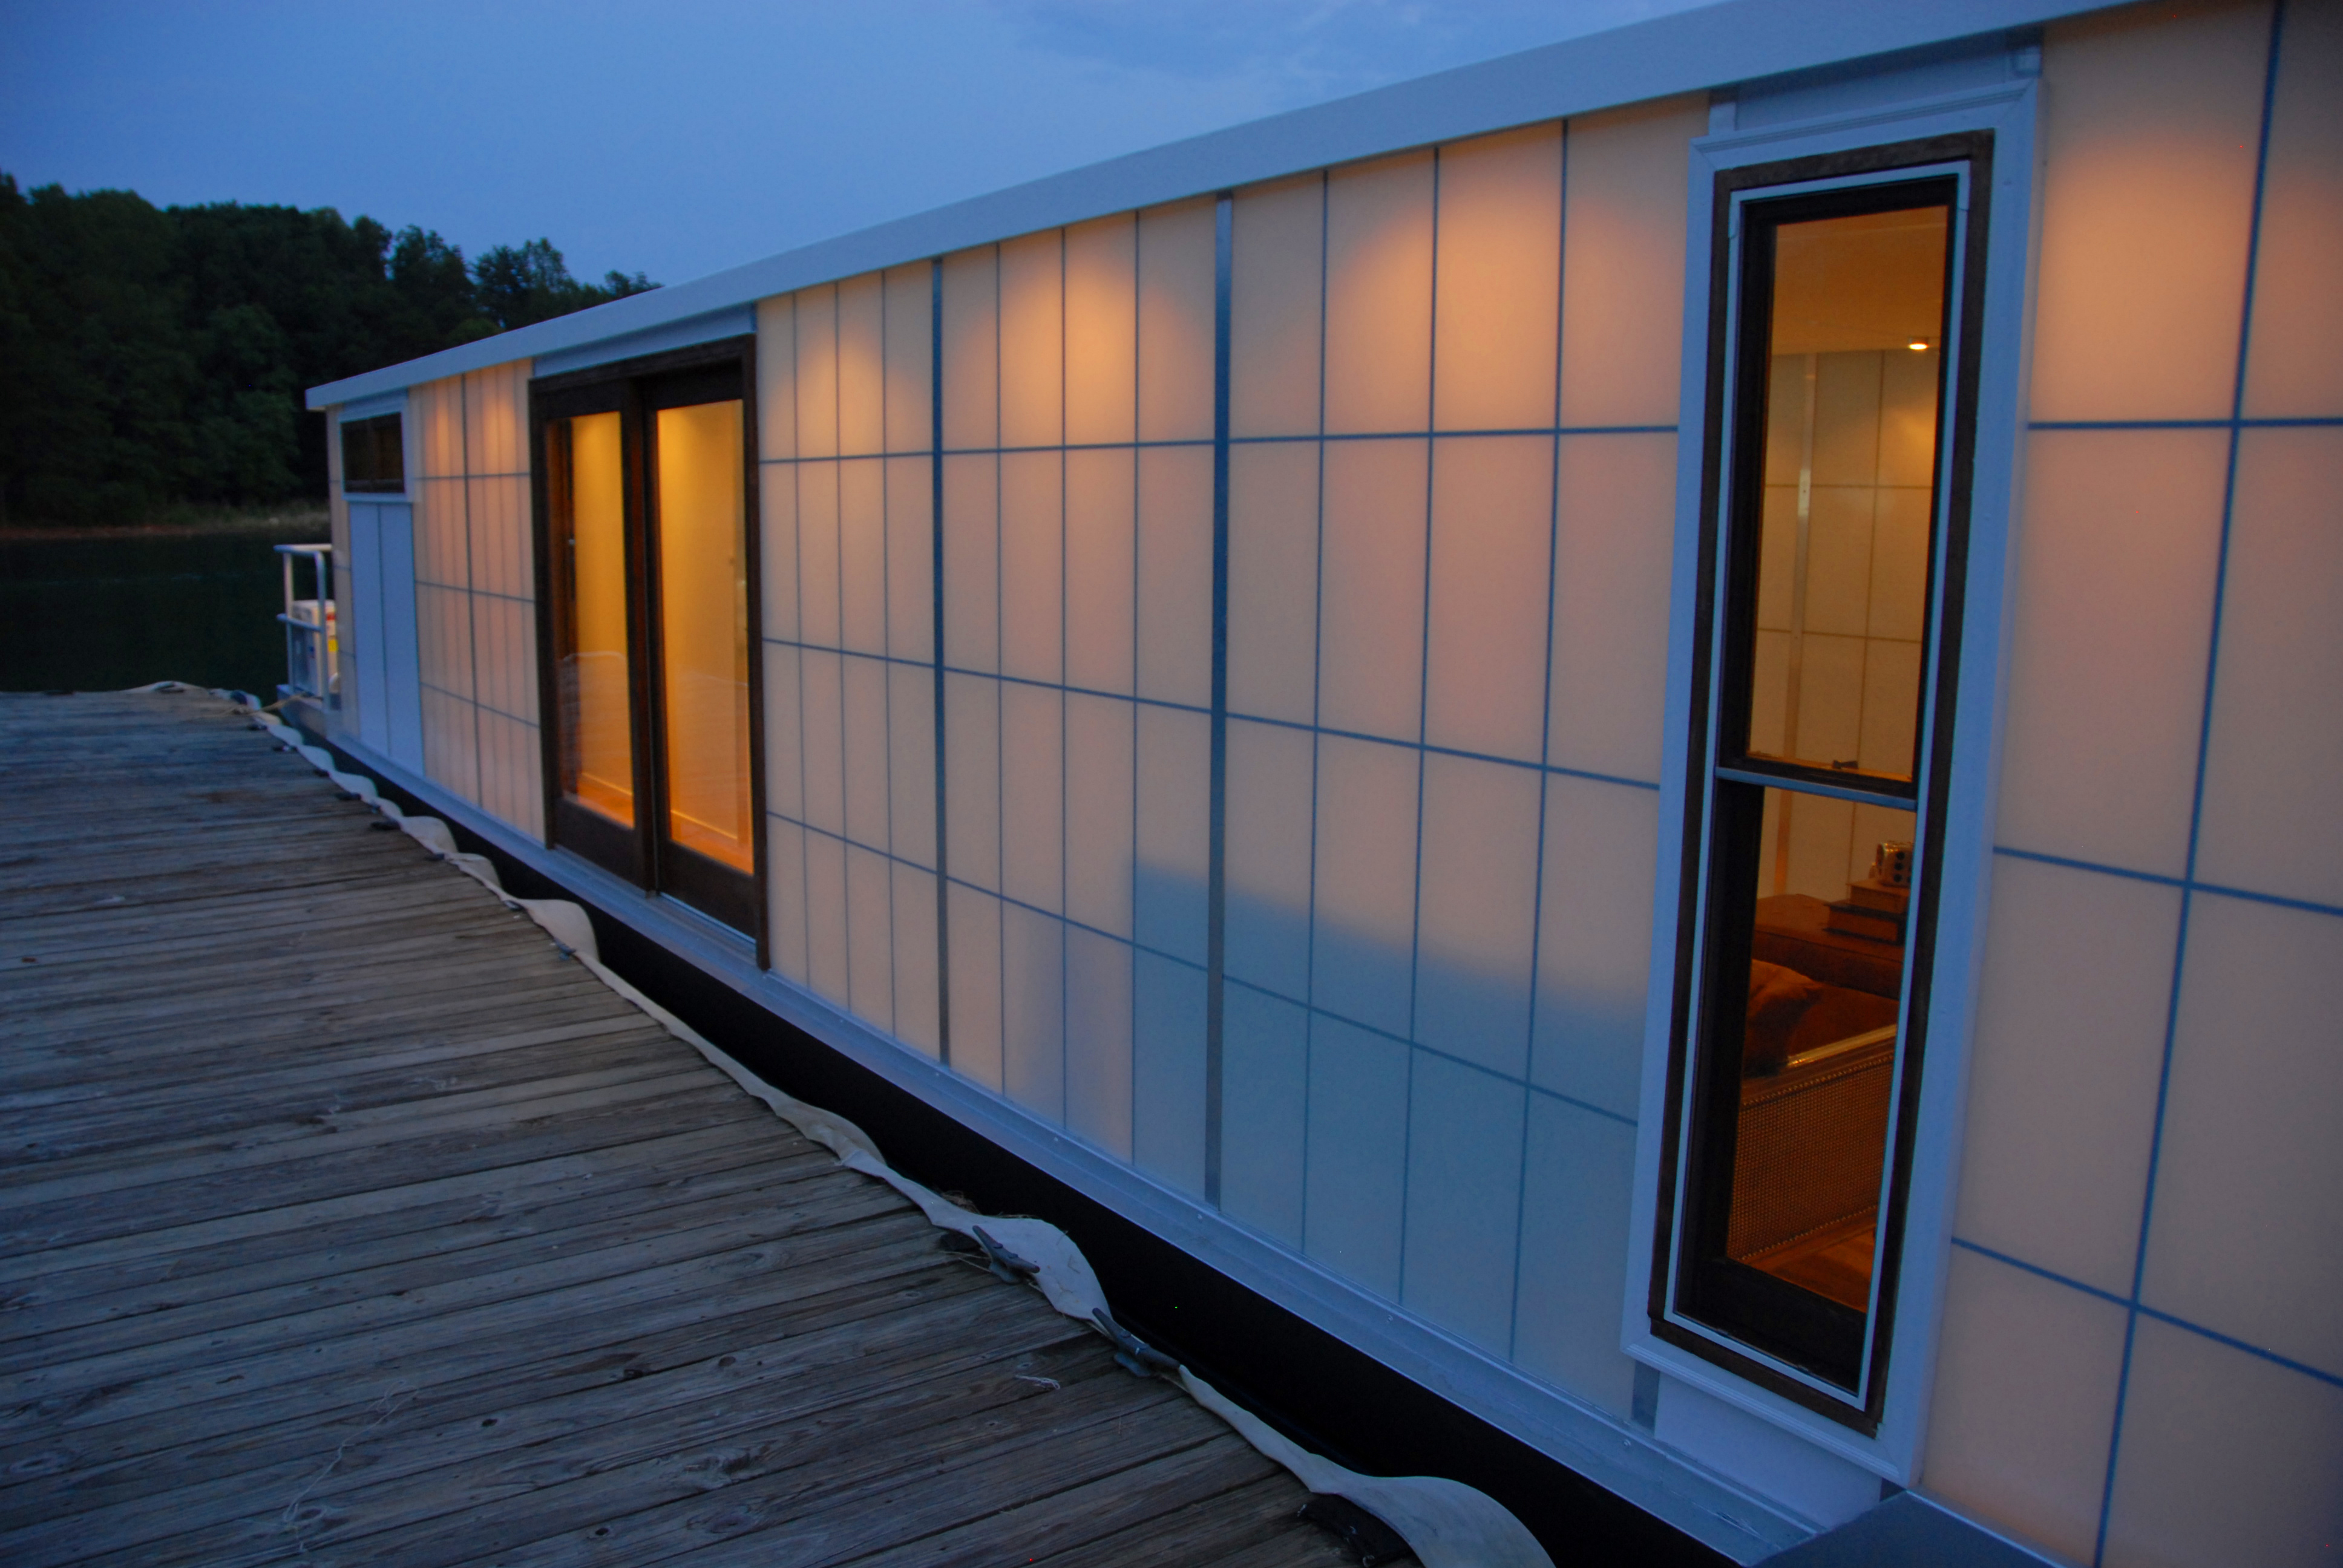 The MetroShip Contemporary HouseBoat